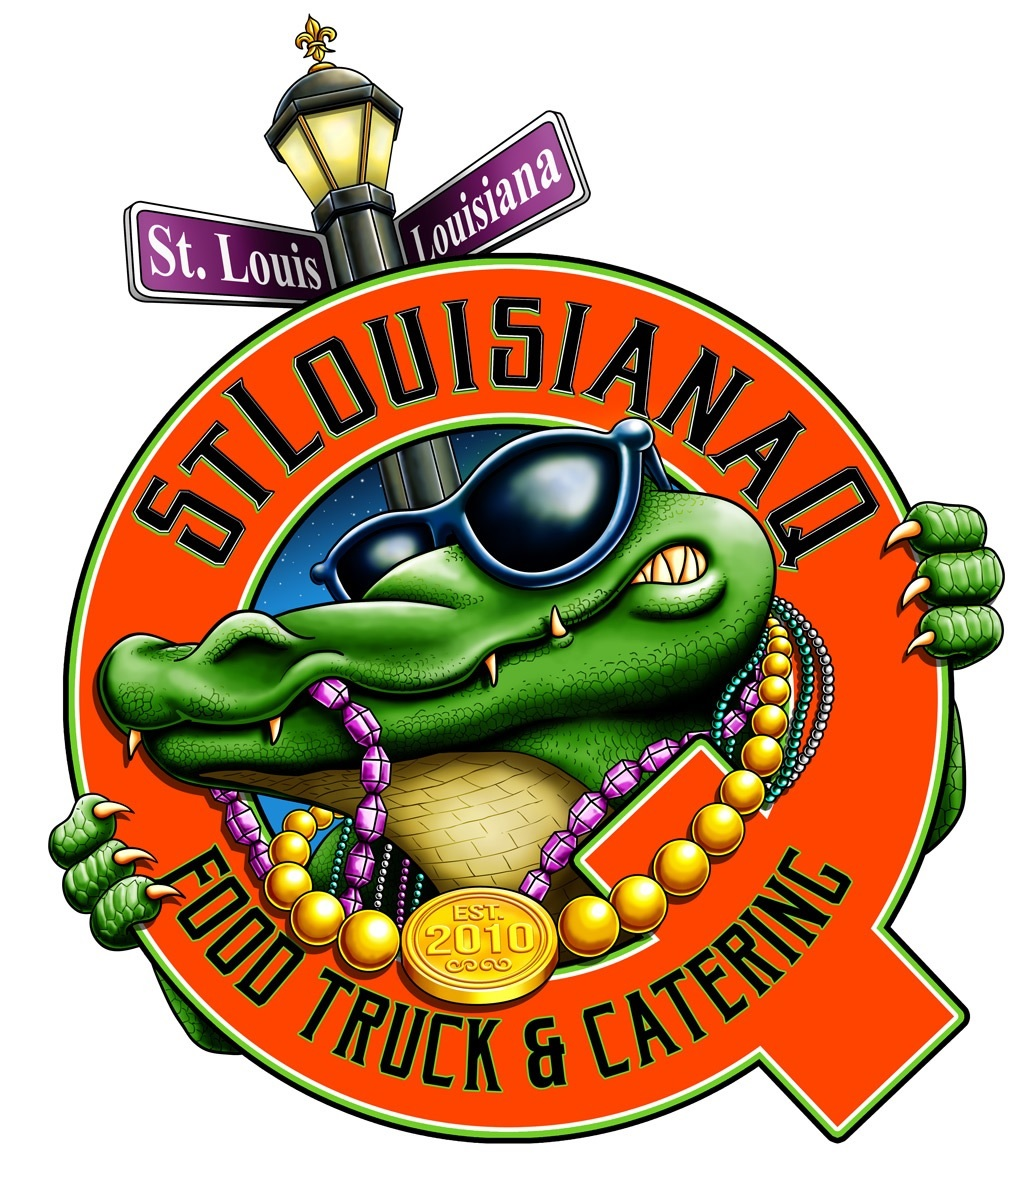 St. Louisiana Q